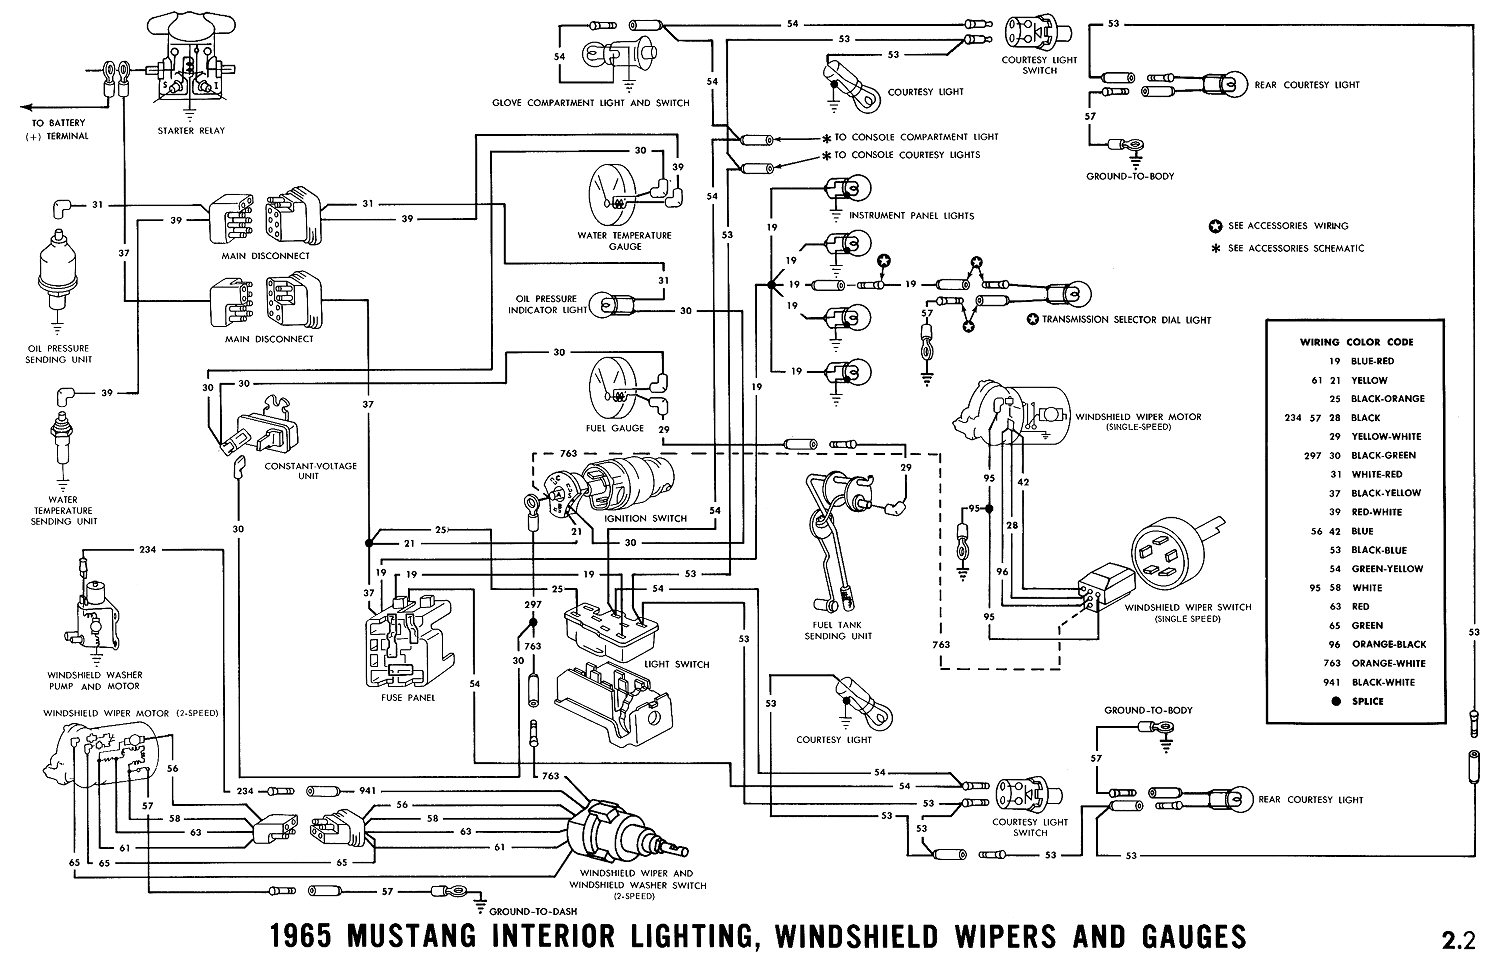 1940 Cadillac Wiring Diagram Free Download Schematic Library 93 Deville Picture 1968 Dash Detailed Schematics Rh Lelandlutheran Com 1966